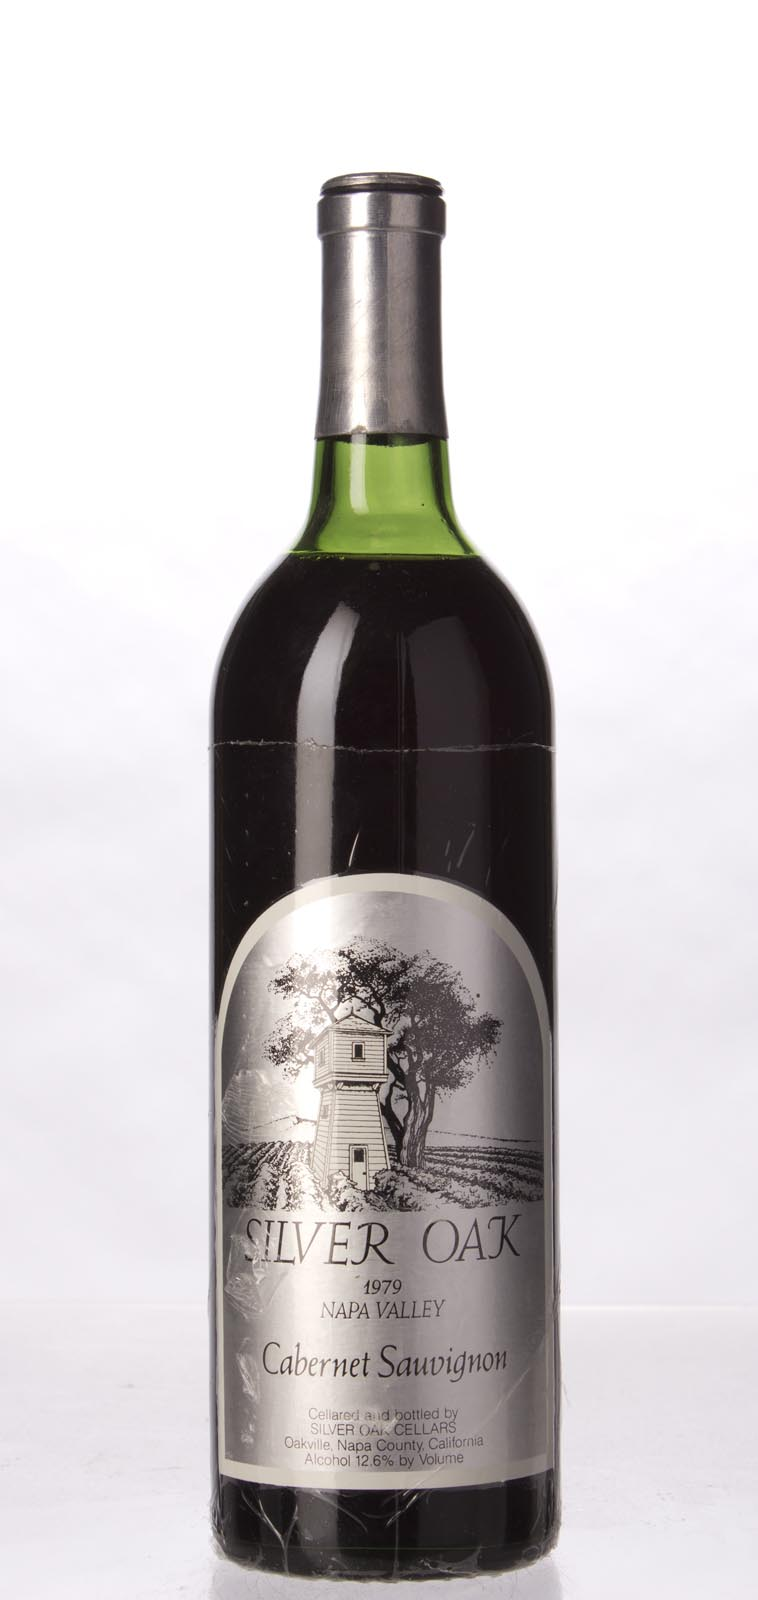 Silver Oak Cabernet Sauvignon Napa Valley 1979, 750mL () from The BPW - Merchants of rare and fine wines.